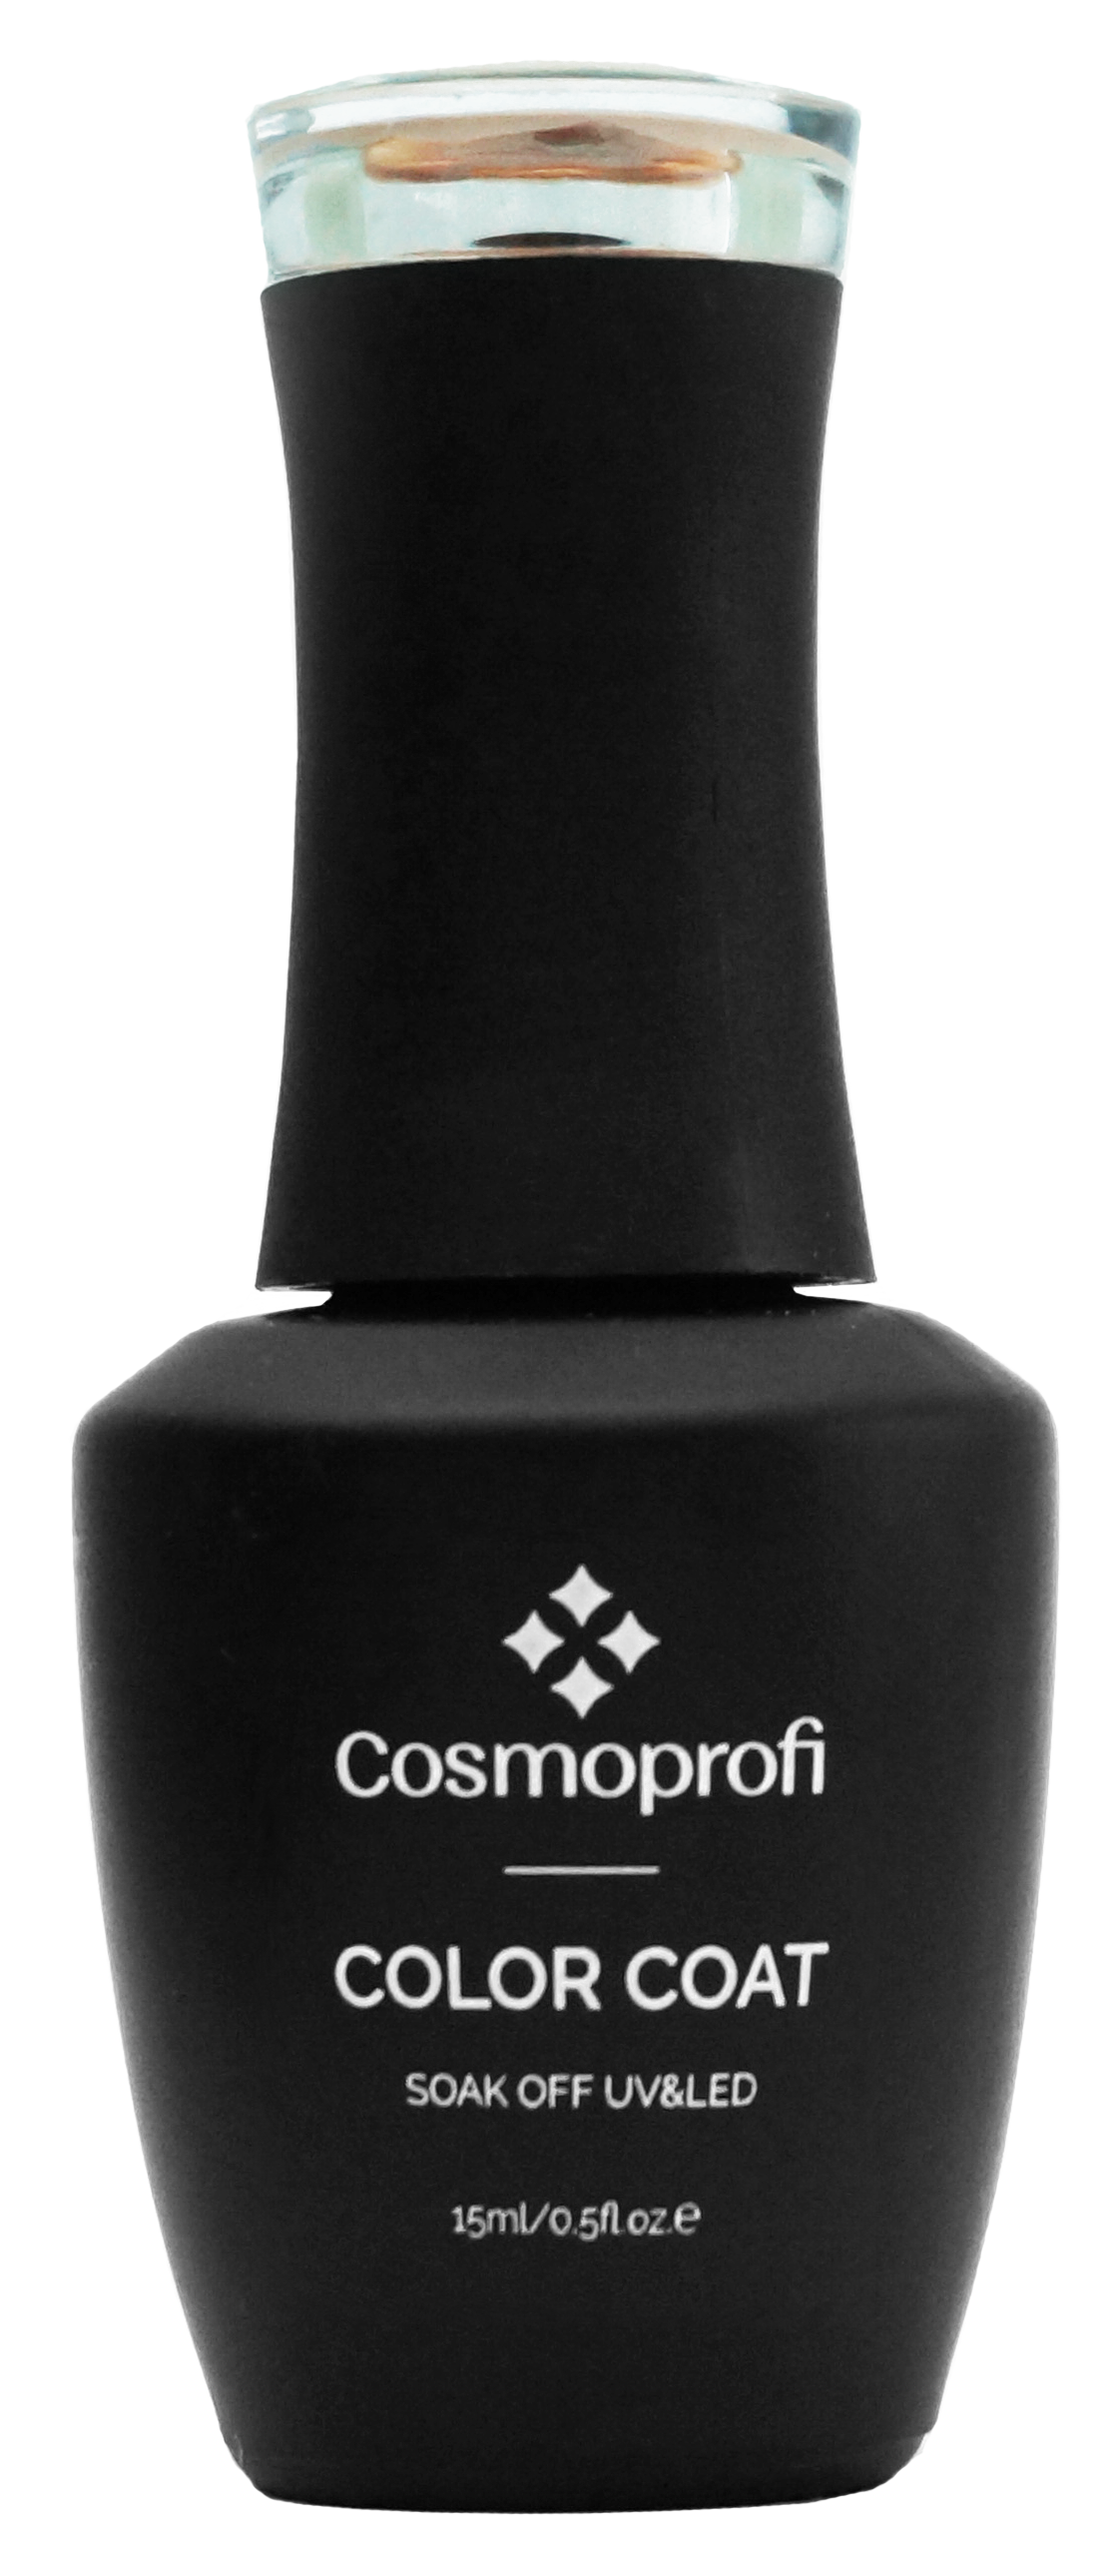 Гель-лак Cosmoprofi, Color coat № 416, 15 мл